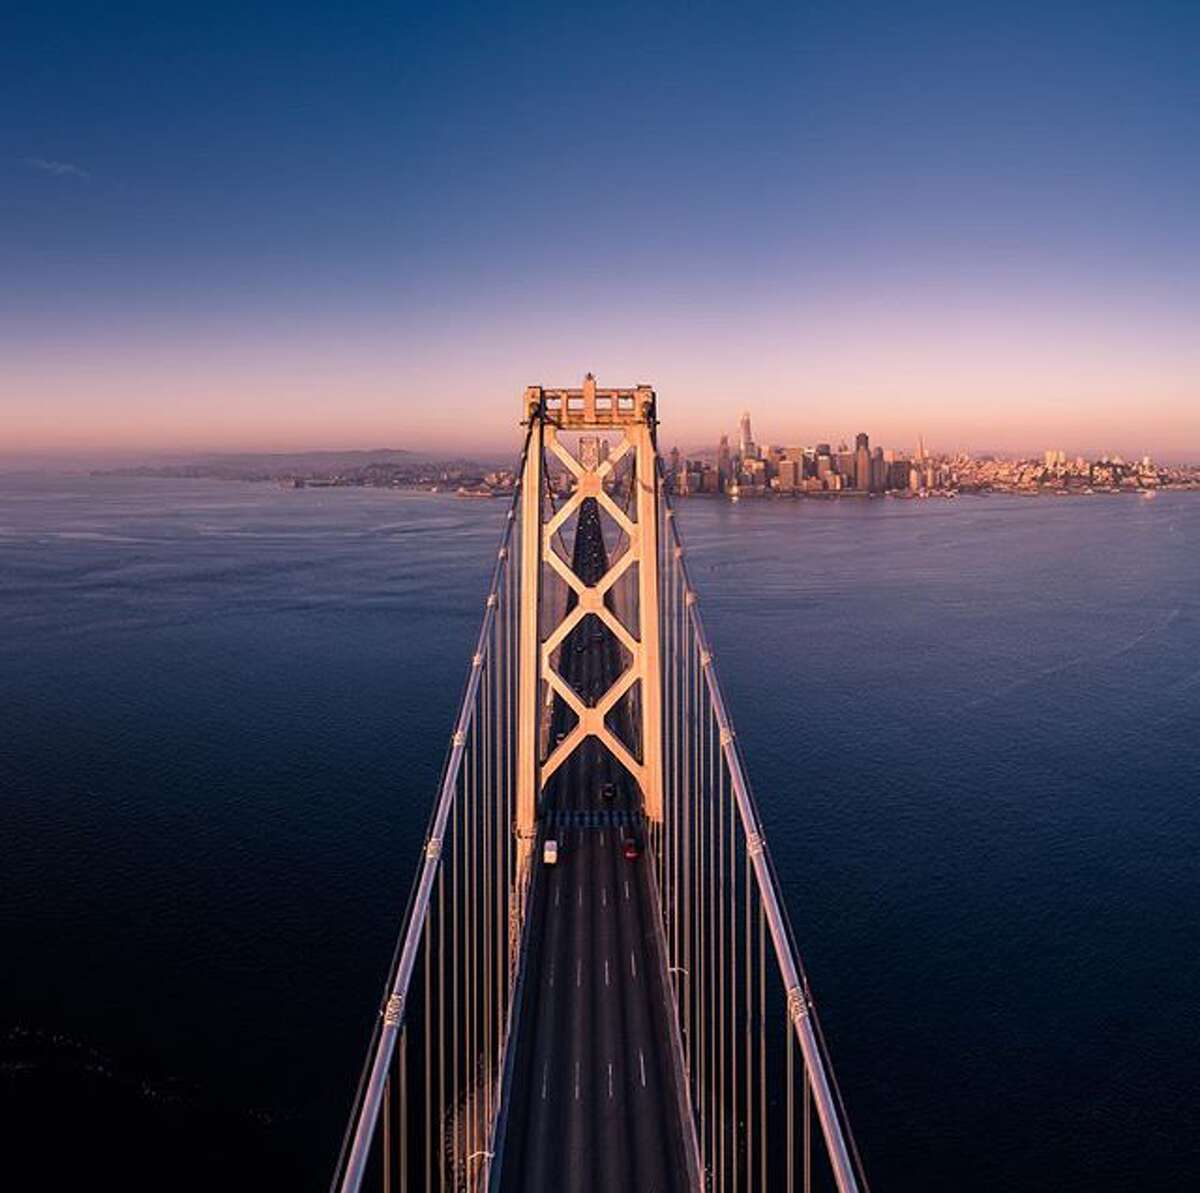 The Bay Bridge at Sunrise @91kilometers